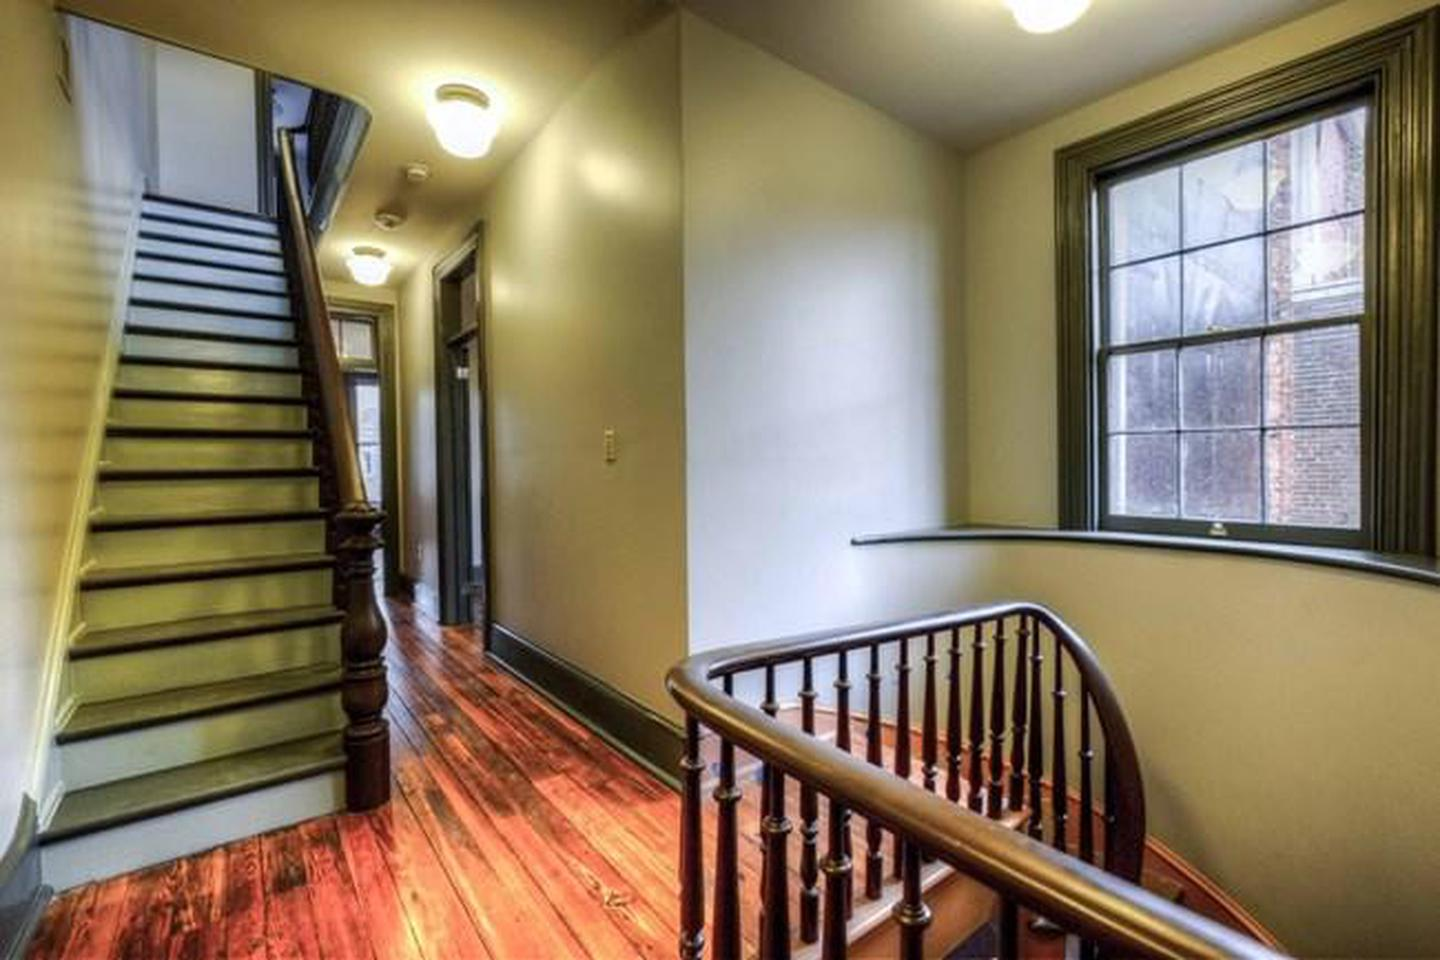 Hallway and staircases on second levelThe second floor of the Woodson Home with restored original floorboards, steps, and railings.